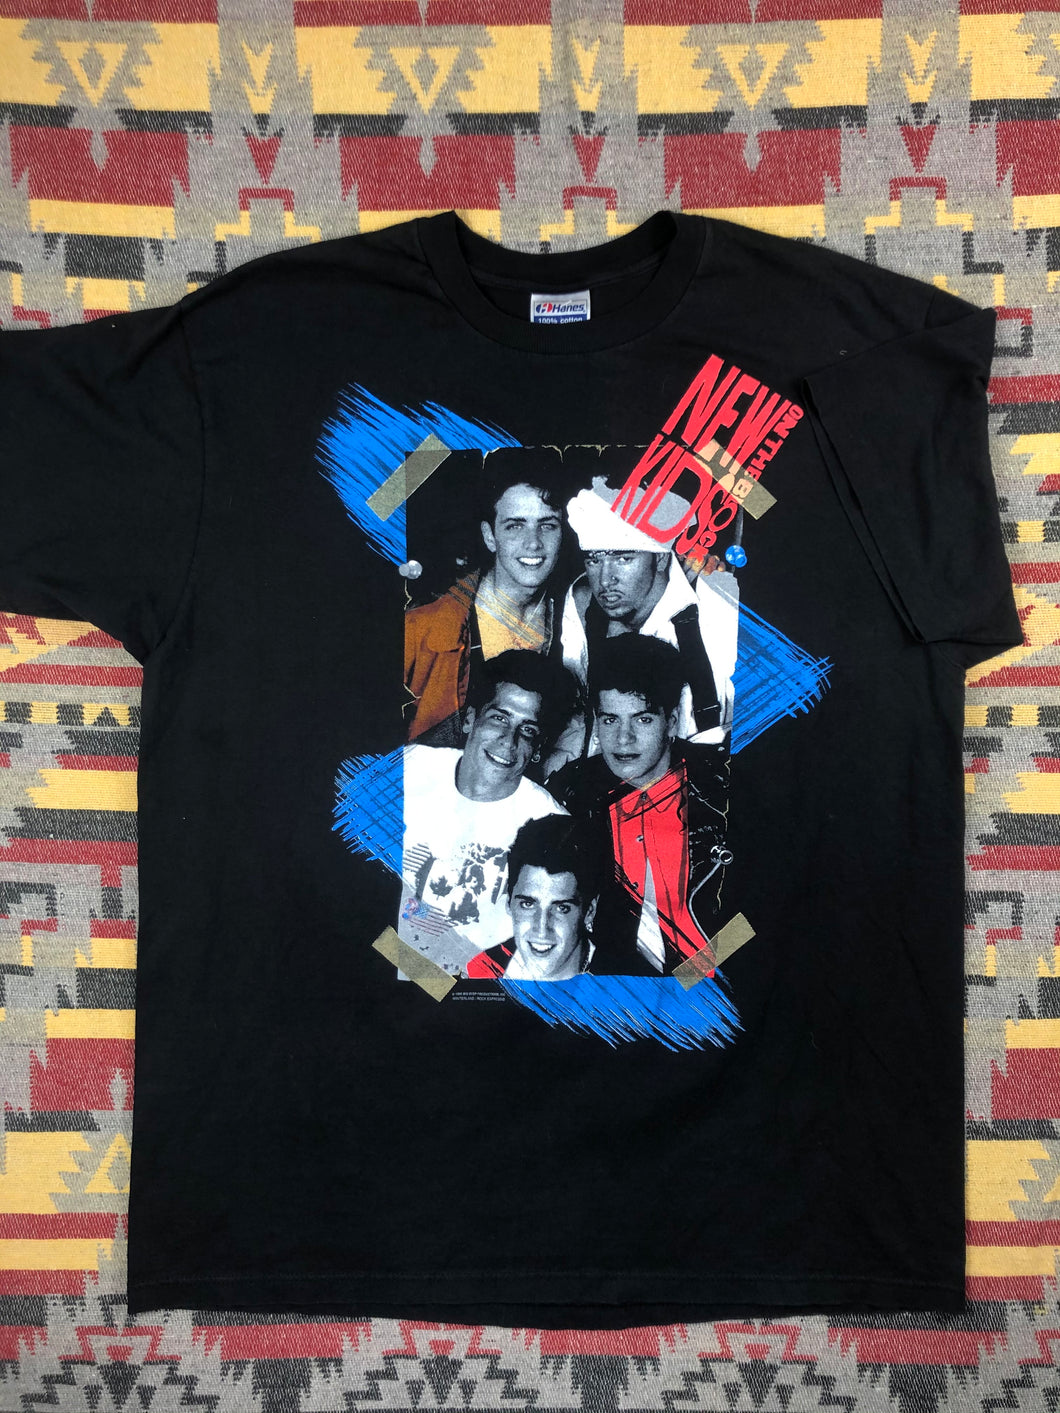 Vintage 1990 new Kids On The Block band shirt size XL